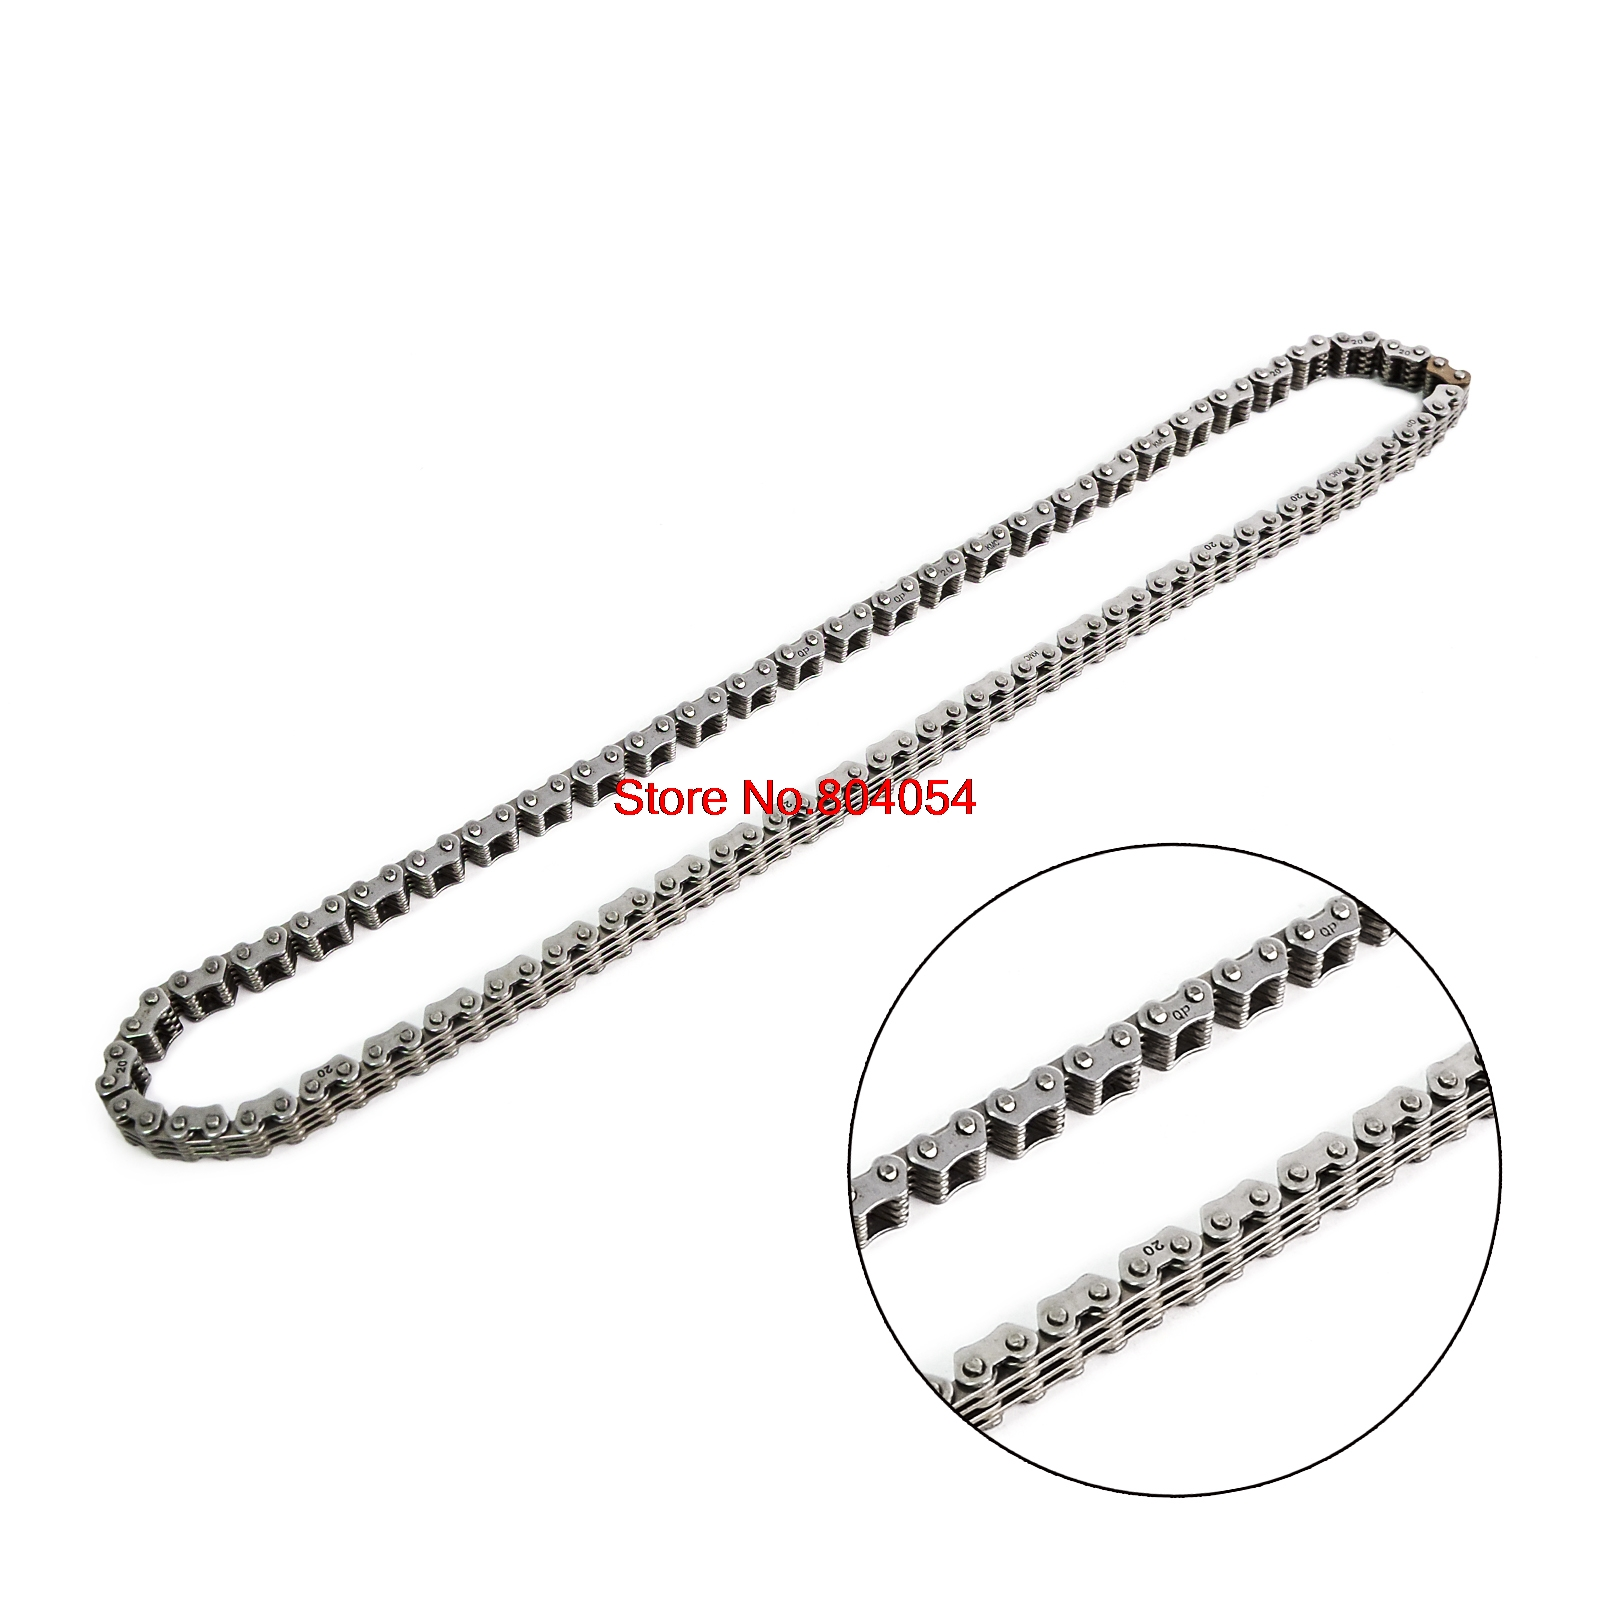 Cam Chain Timing Chain Fits For Suzuki LT-Z400 Quadsport Z400 LTZ400 2003-2014